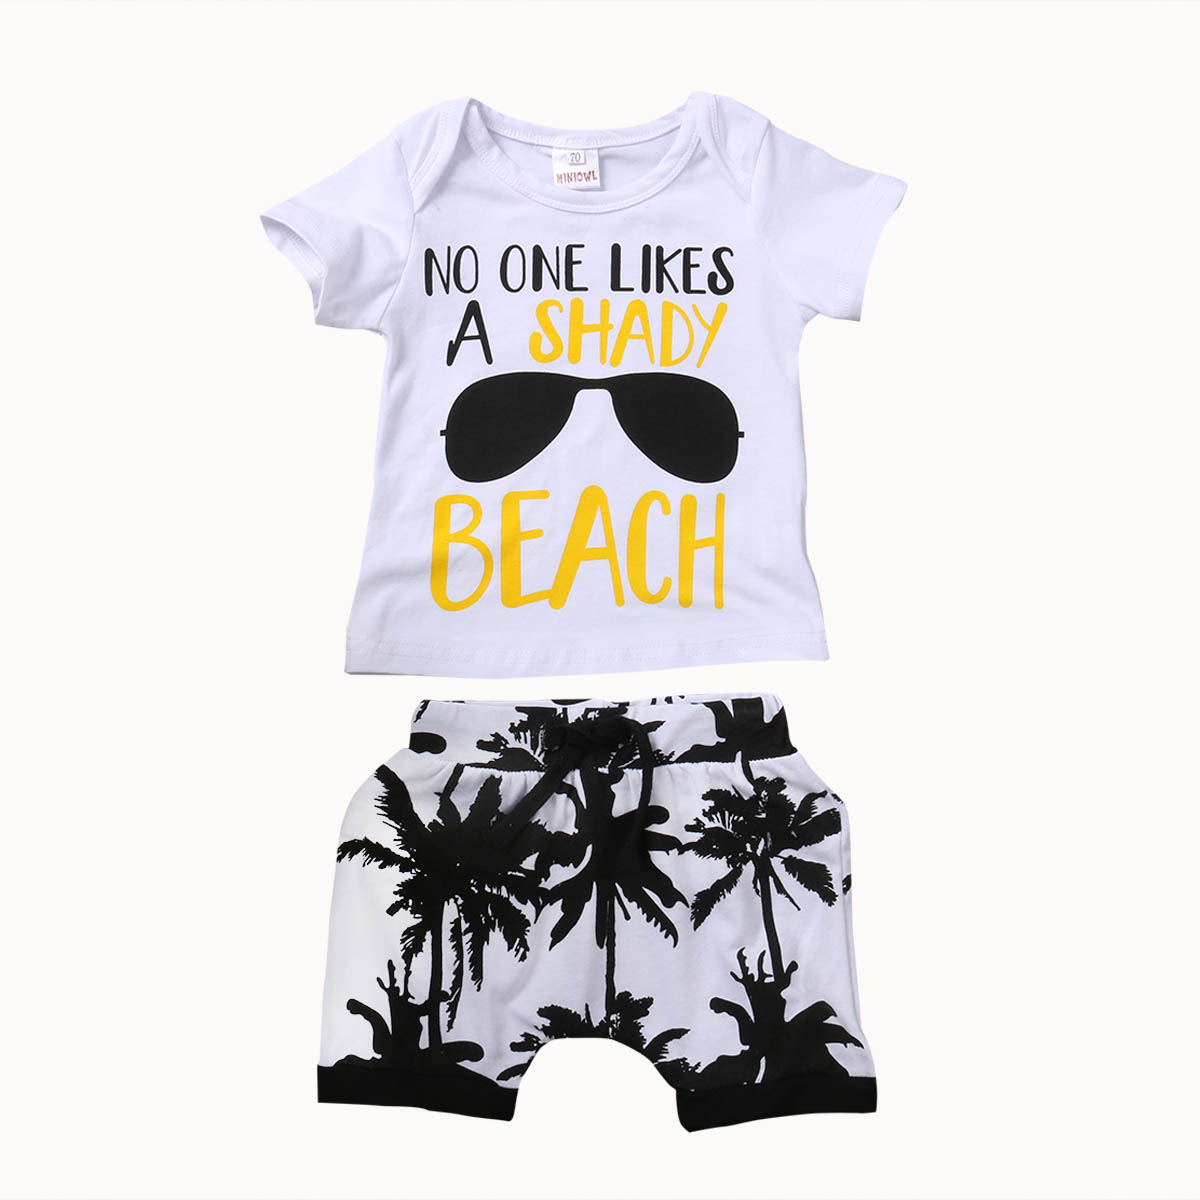 2PCS Toddler Kids Baby Boy Girl Clothes Set 2017 Summer Short Sleeve Cotton T-shirt Top+Shorts Hot Pant Outfit Children Clothing summer baby boy clothes set cotton short sleeved mickey t shirt striped pants 2pcs newborn baby girl clothing set sport suits